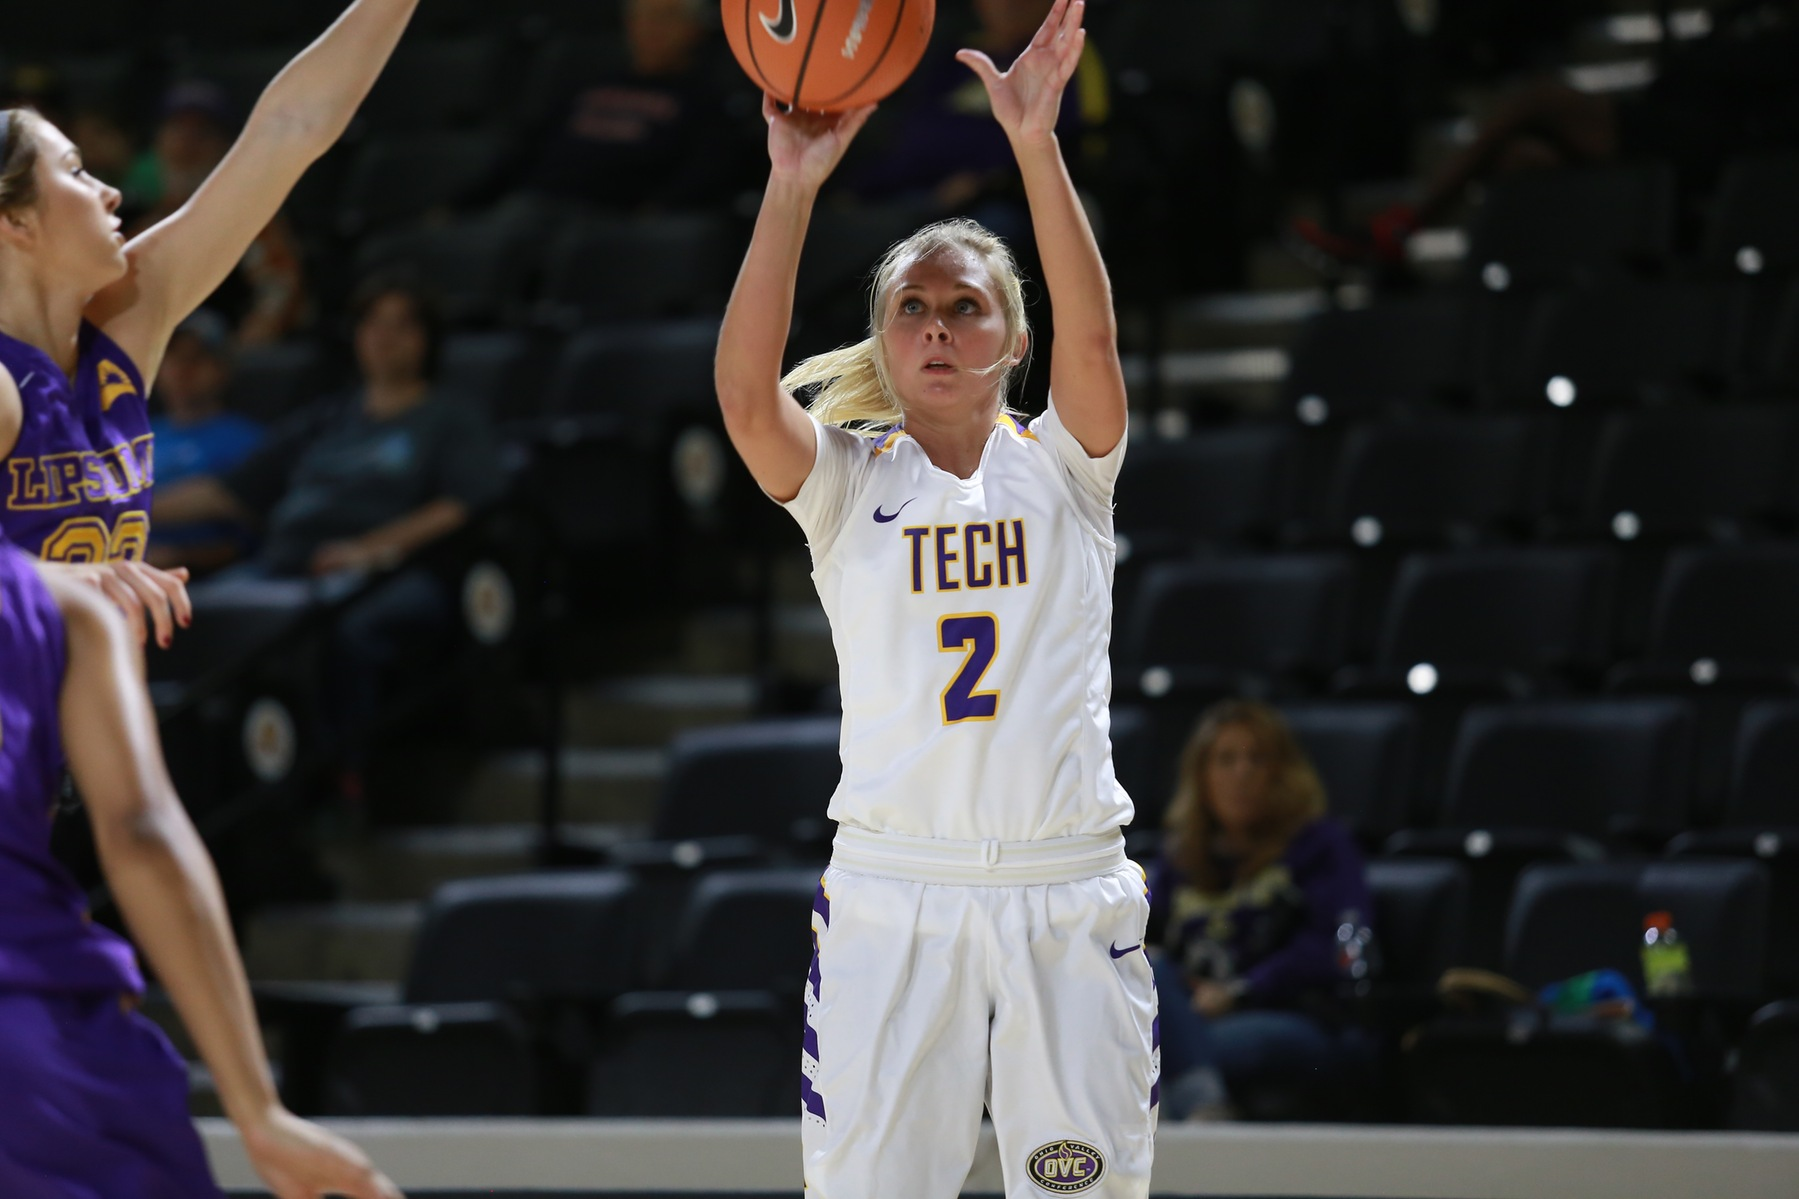 Tech ends non-conference play with close loss to Lipscomb